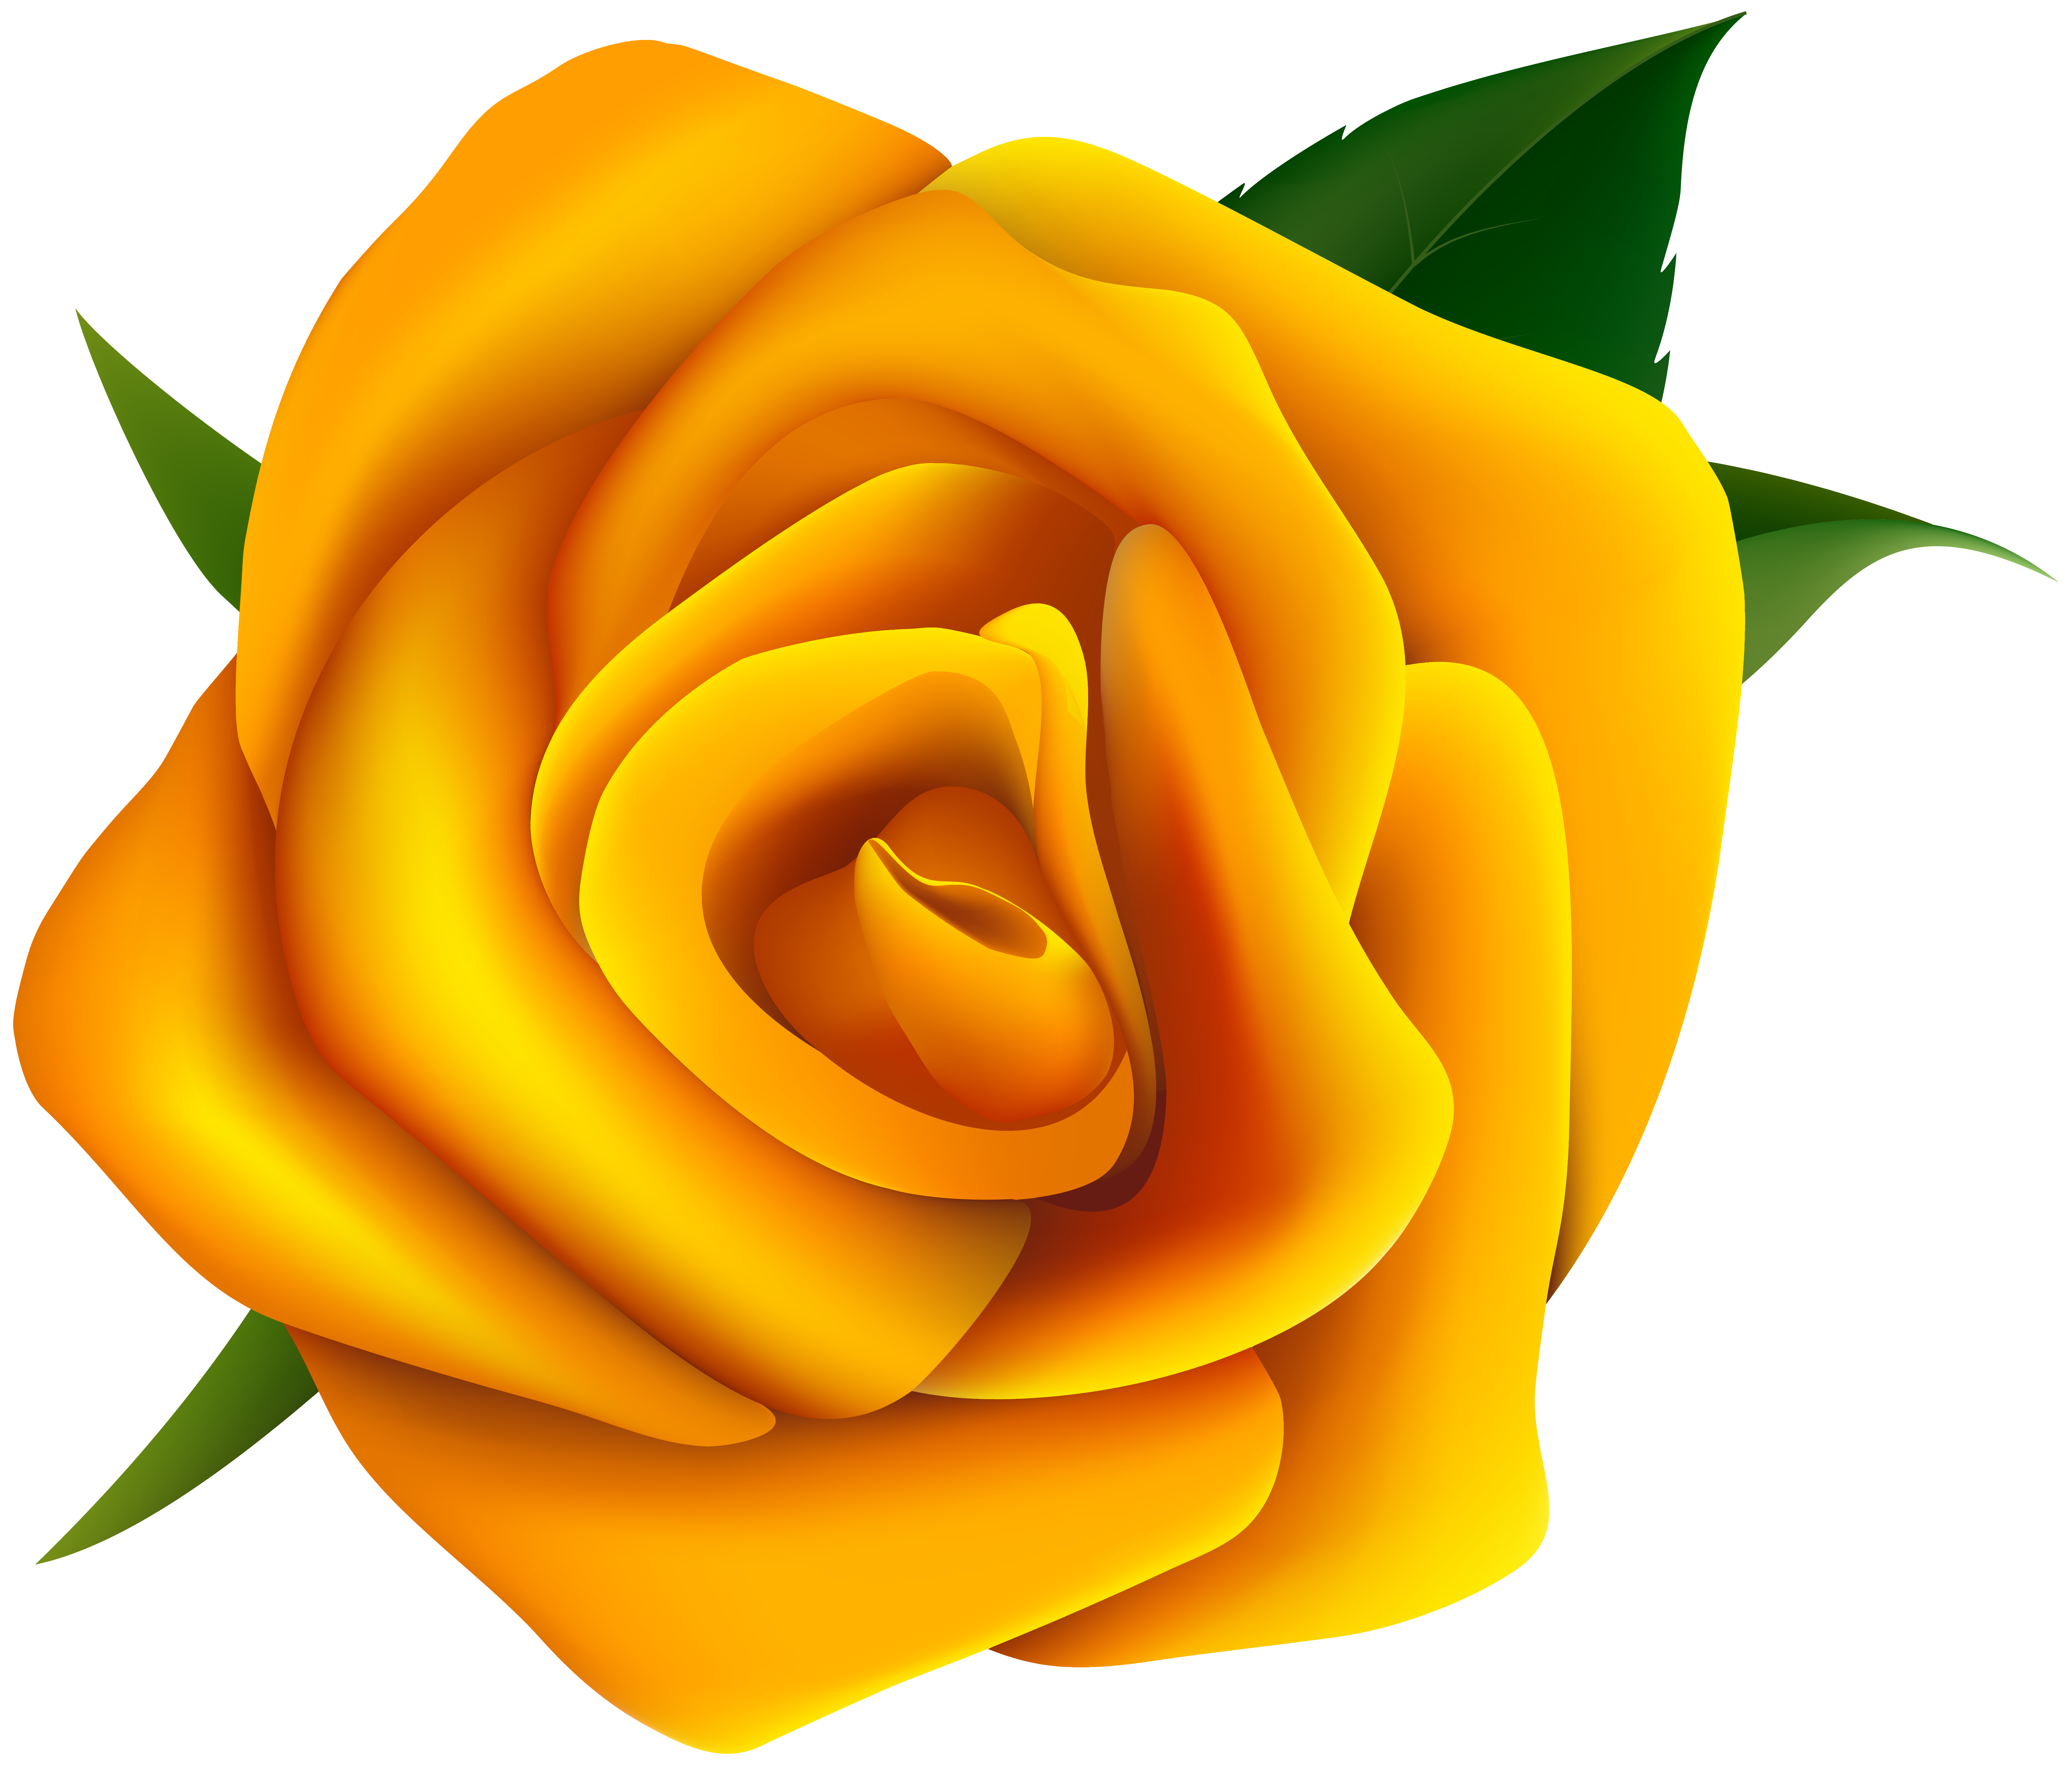 Yellow flower clipart png vector freeuse stock Yellow Rose Clipart PNG Image vector freeuse stock